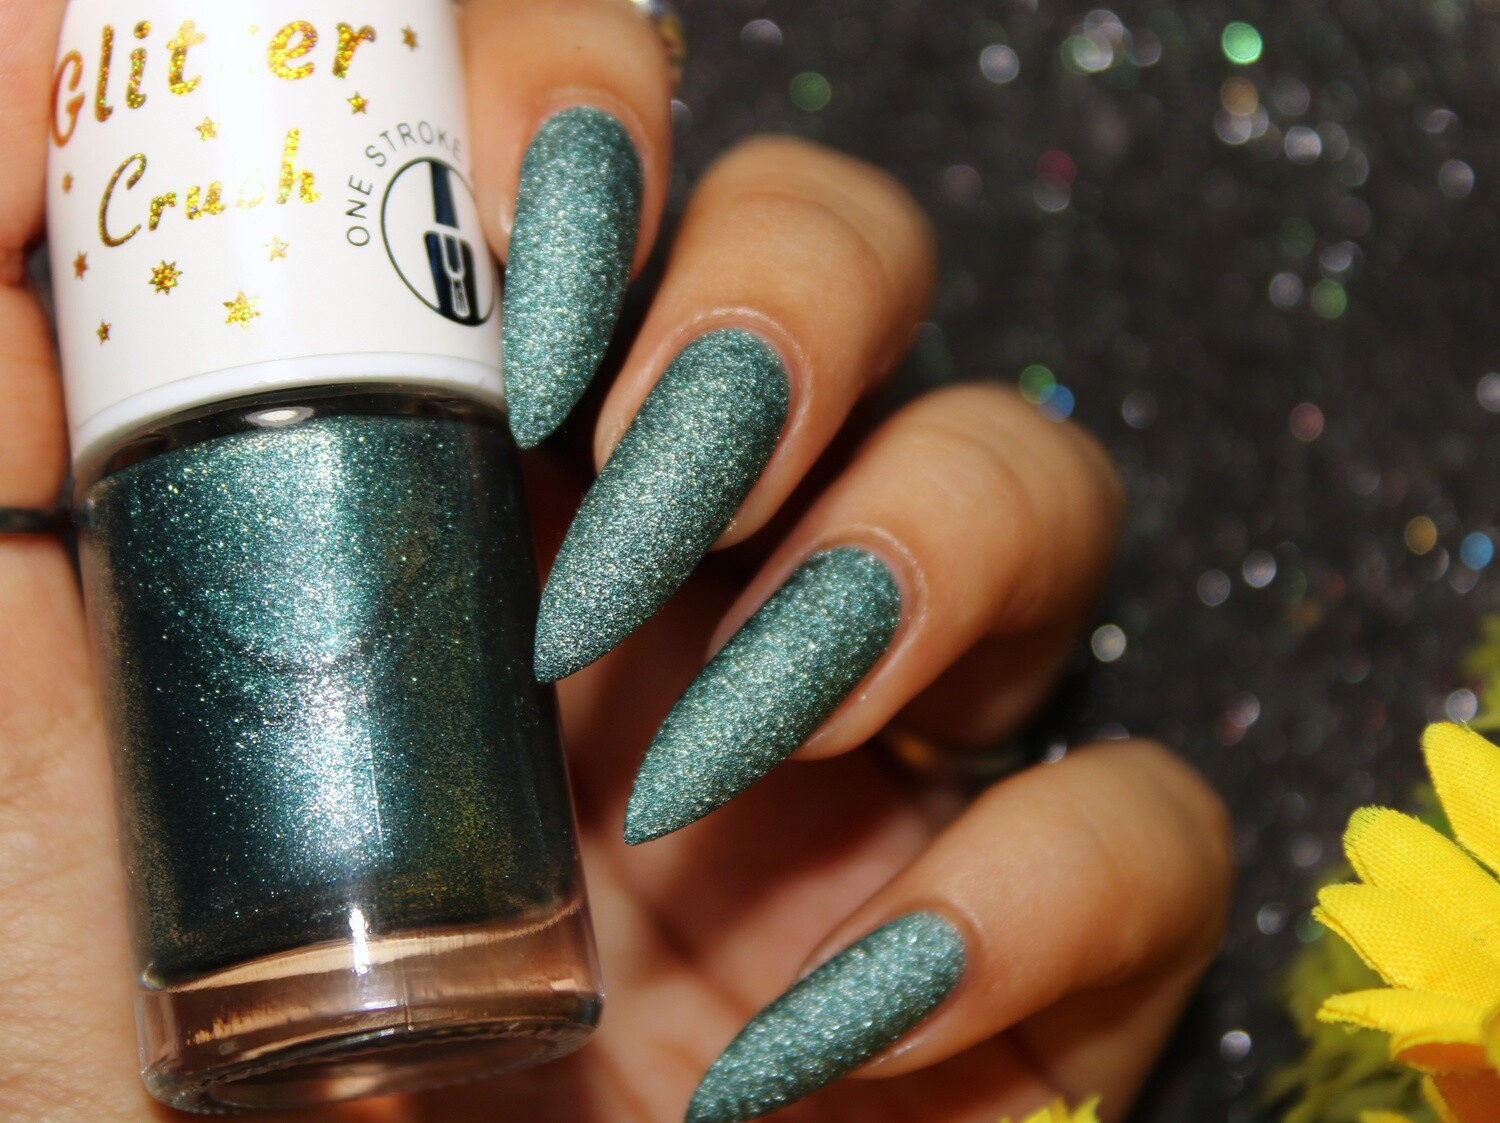 Glitter Crush Wild Dreams